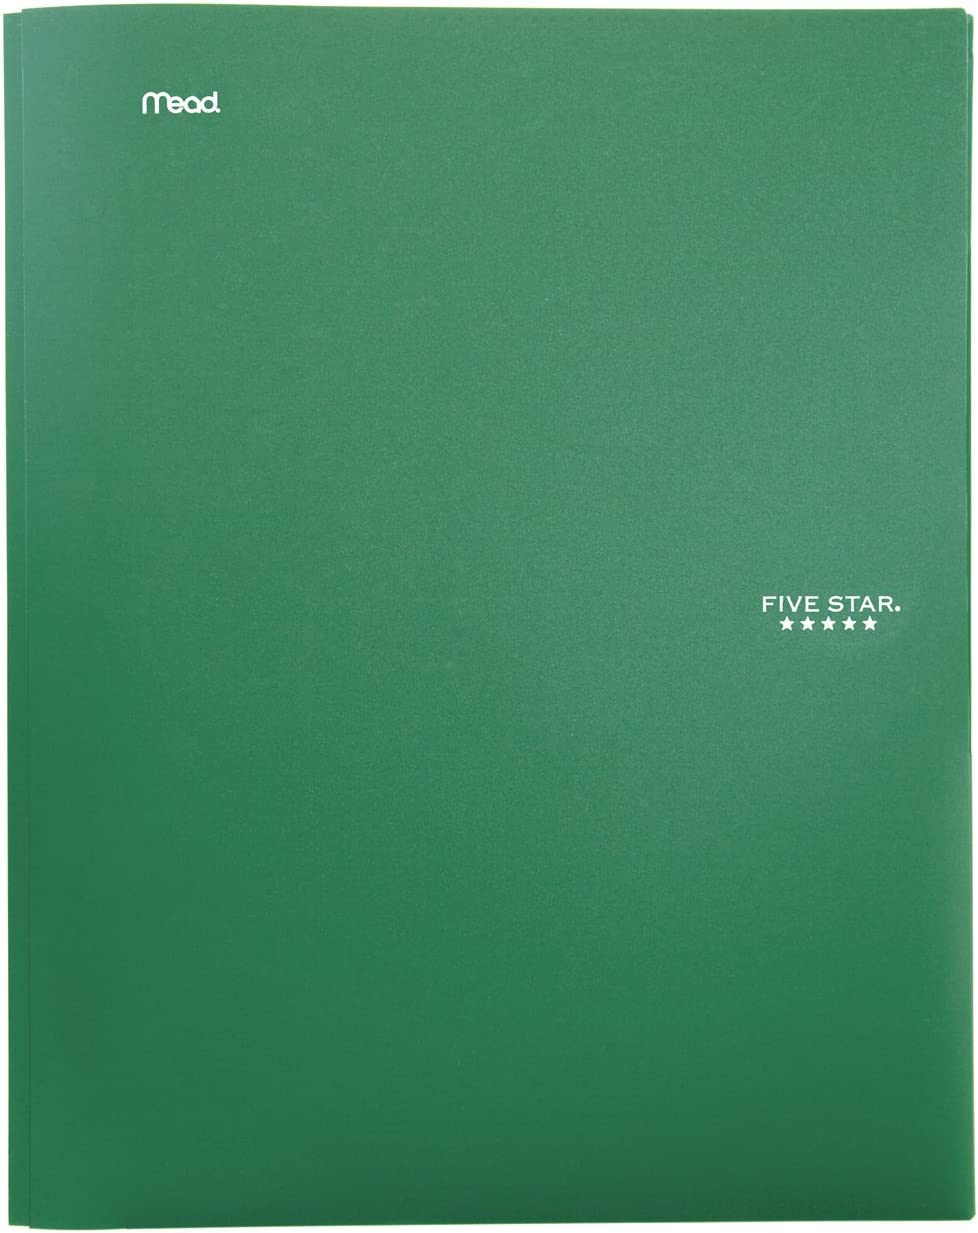 "Five Star 2-Pocket Folder, Stay-Put Folder, Plastic Colored Folders with Pockets & Prong Fasteners for 3-Ring Binders, For Home School Supplies & Home Office, 11"" x 8-1/2"", Green (72111)"